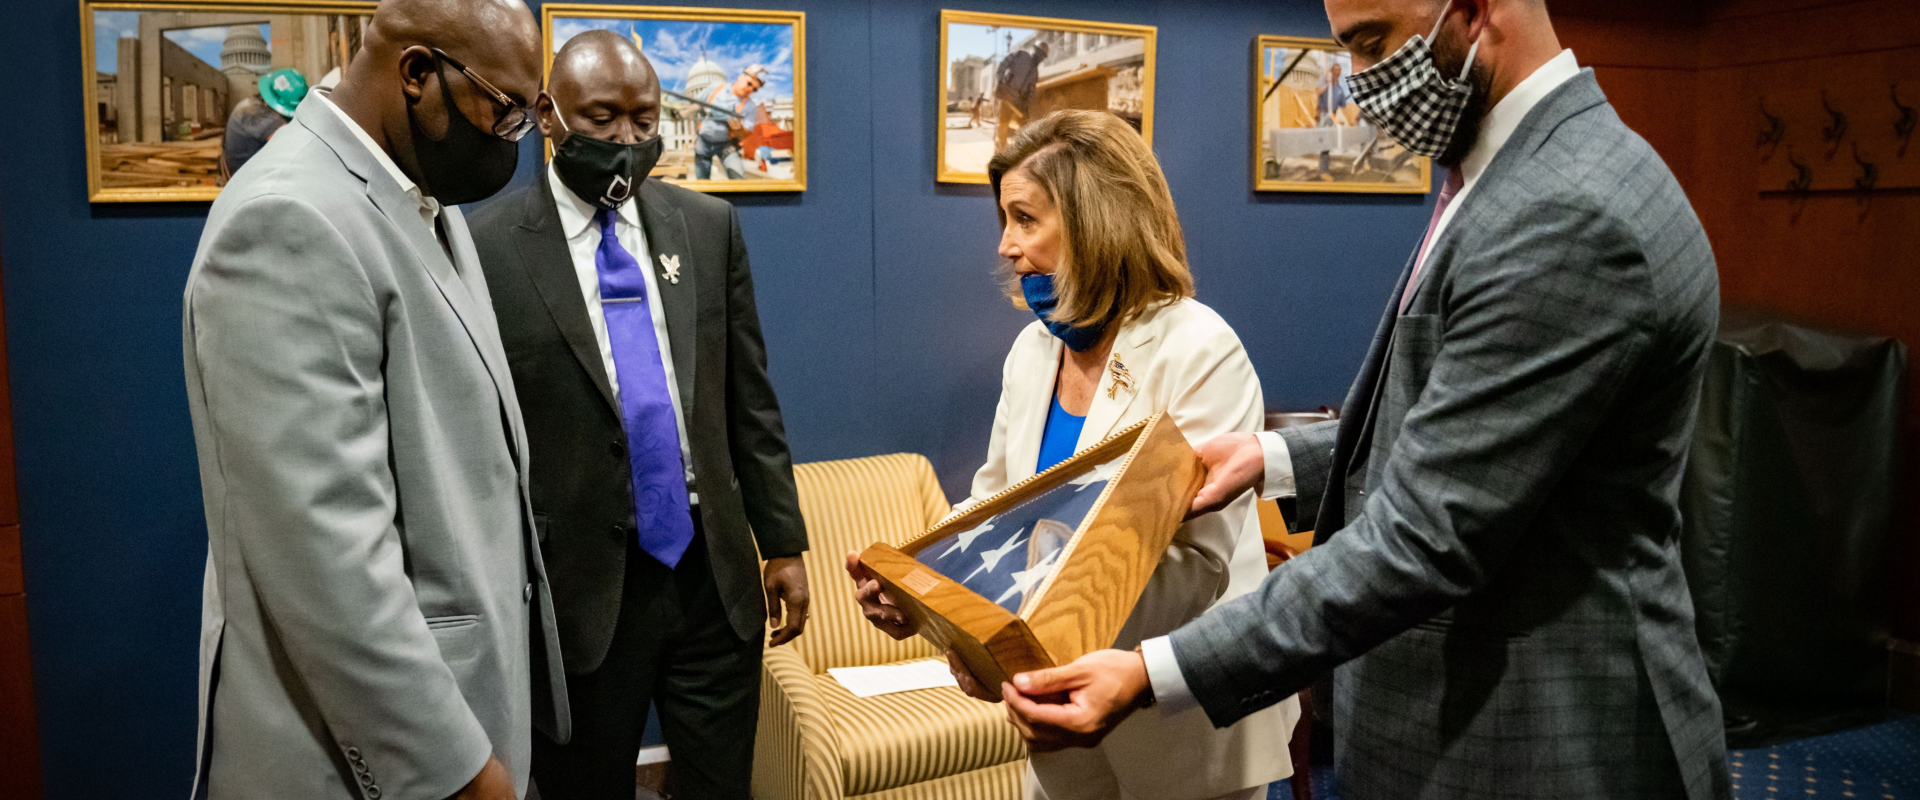 Congresswoman Nancy Pelosi talks with Philonise Floyd, George Floyd's brother, before his heart-wrenching testimony to the House Judiciary Committee hearing on Police Brutality & Racial Profiling. Congresswoman Pelosi presented Mr. Floyd an American flag